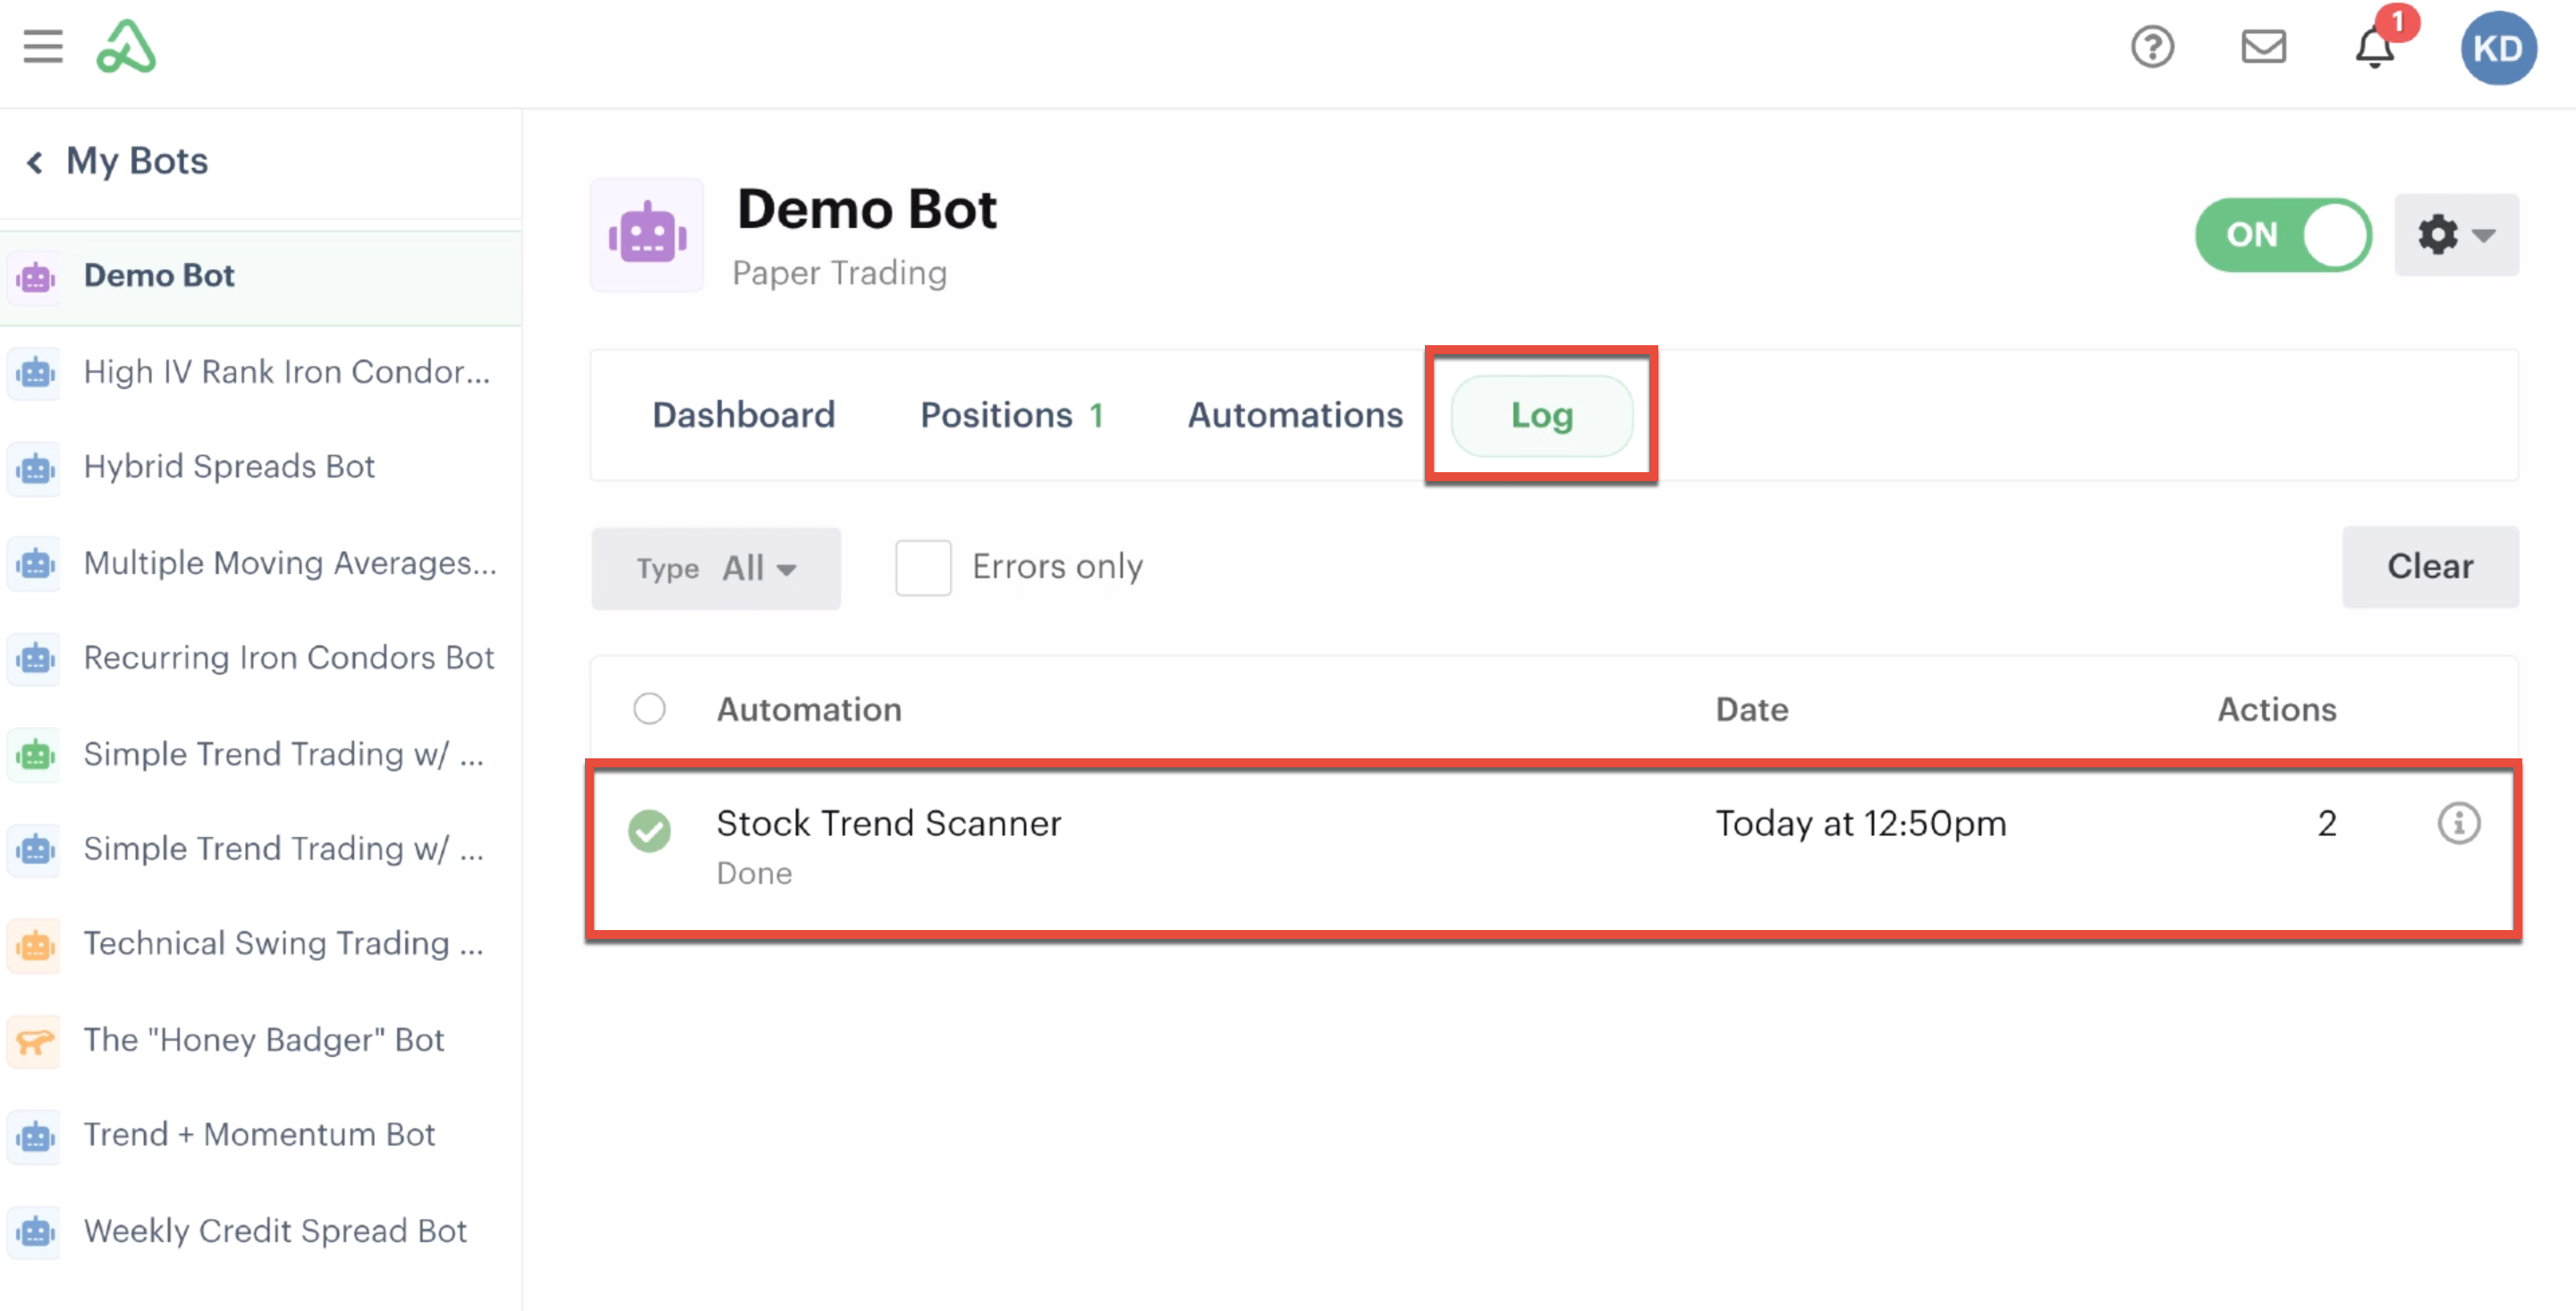 Bot log highlighted displaying successful scanner automation